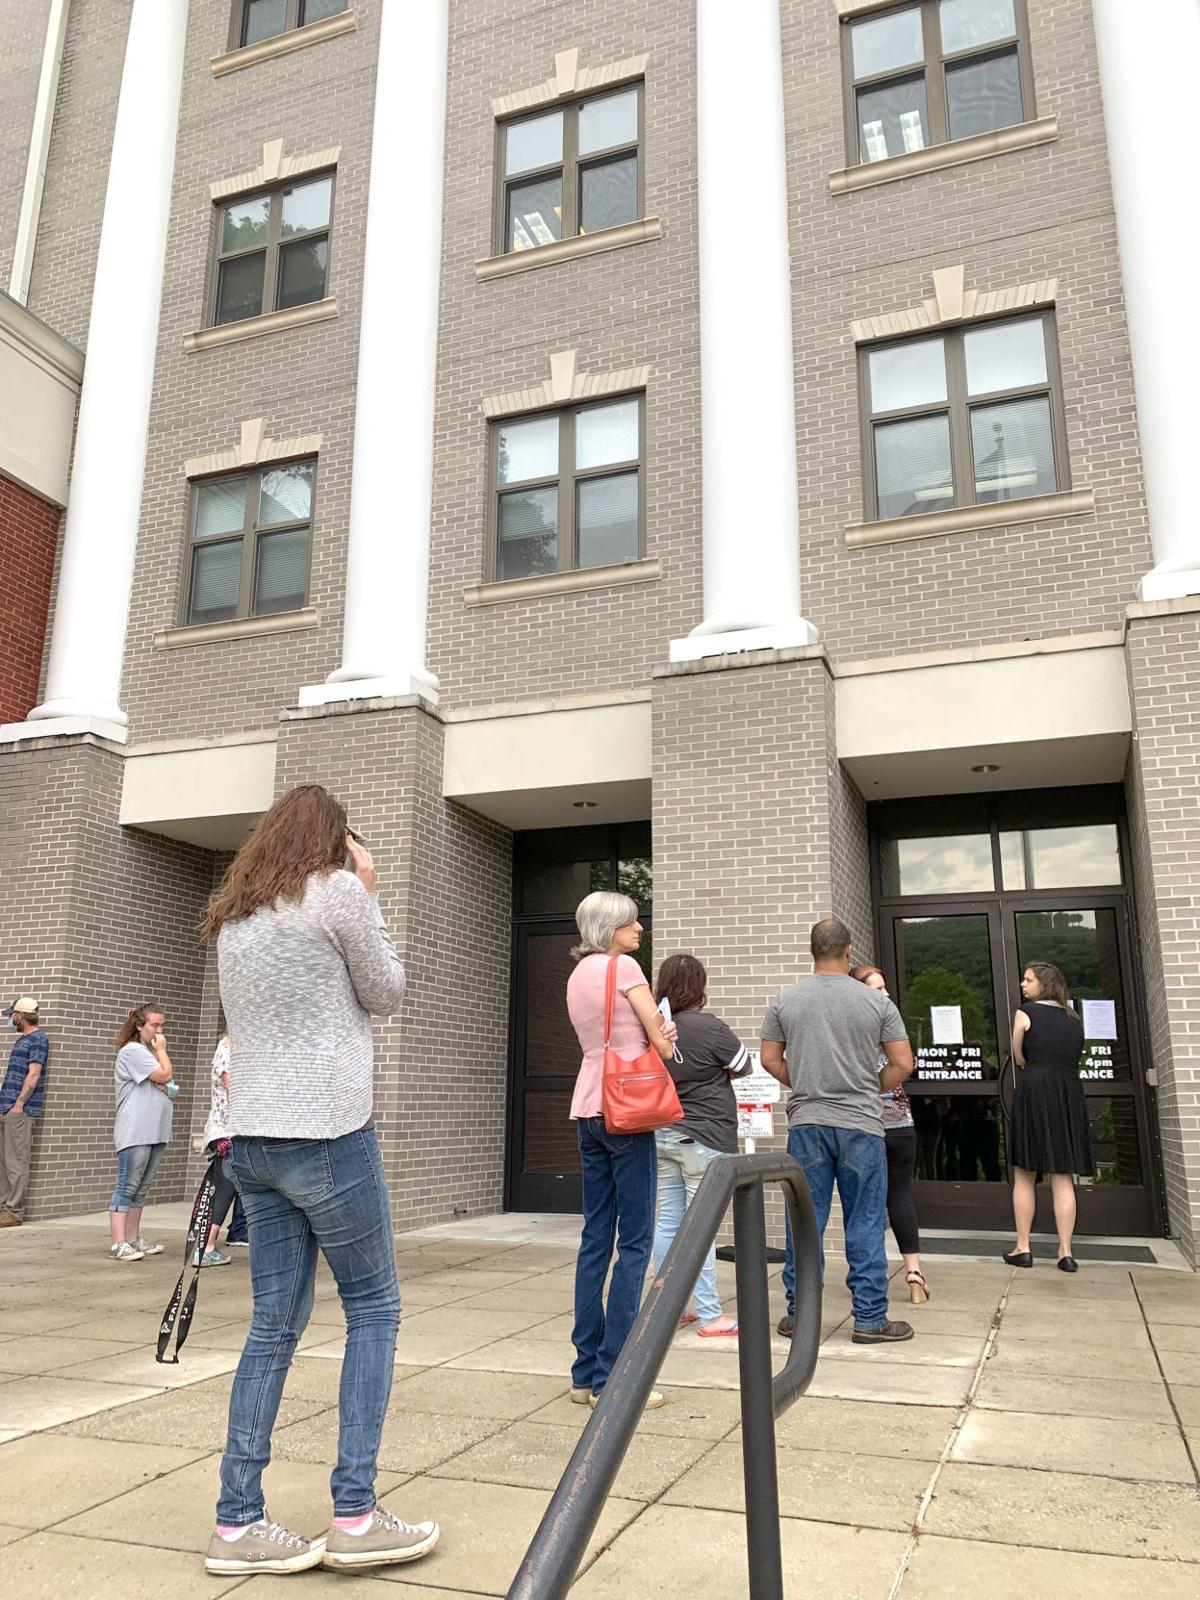 Long lines at courthouse as it reopens to public